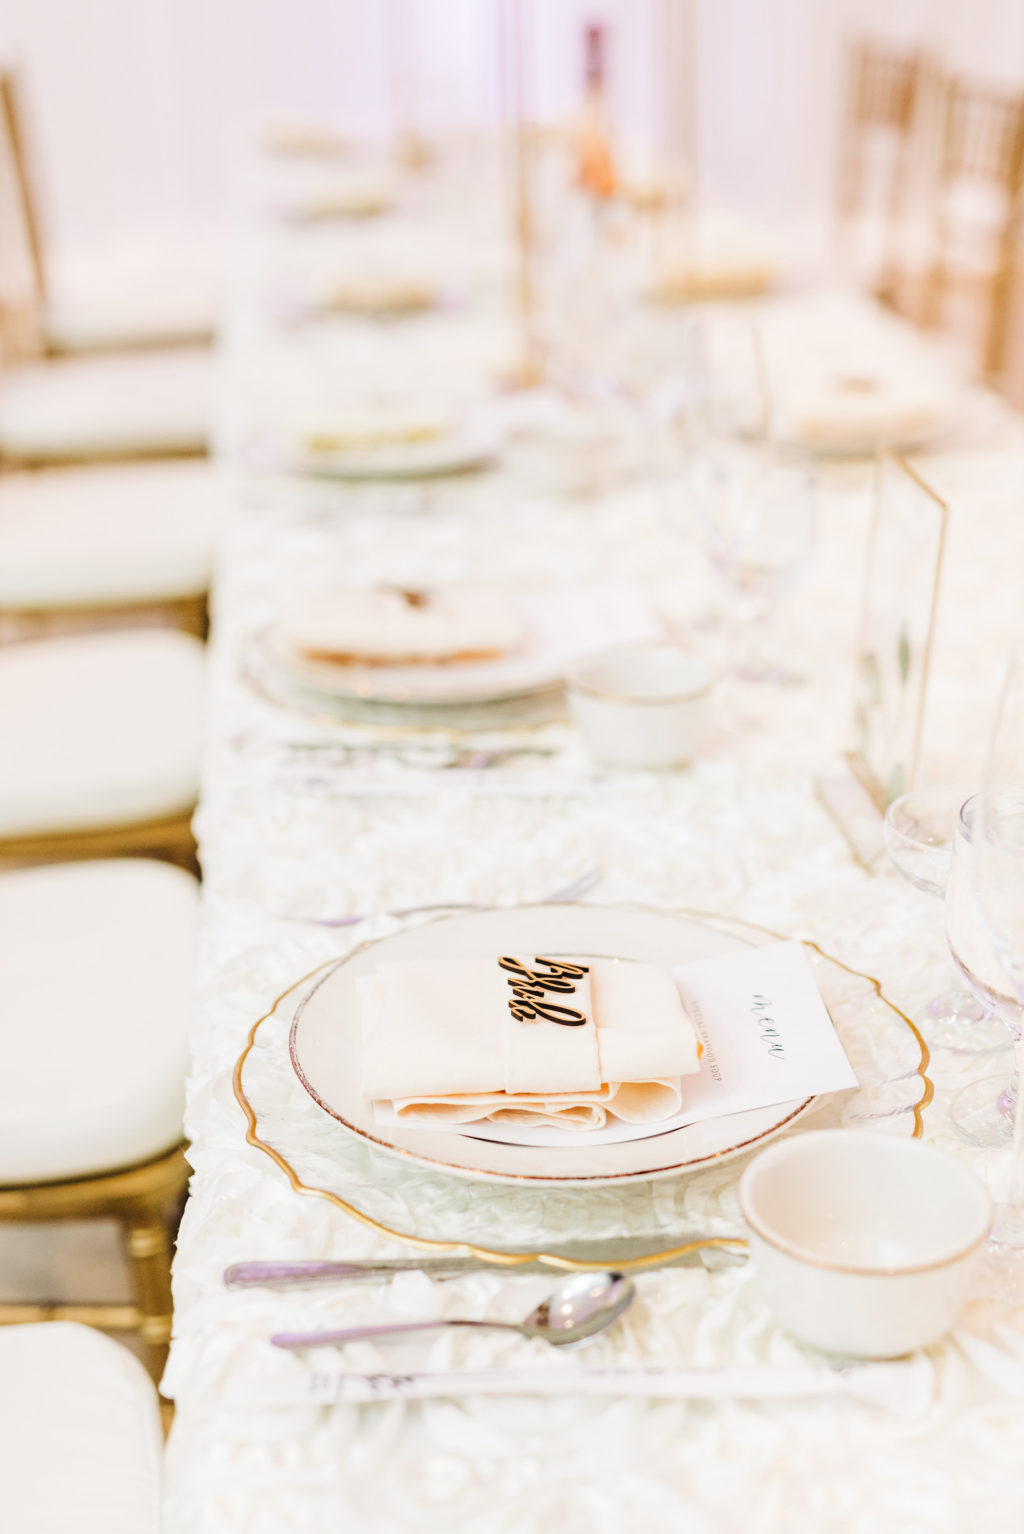 Elegant Garden Wedding Reception Decor, Long Feasting Table with White Floral Table Linen, Scalloped Gold and Clear Charger   Tampa Bay Wedding Rentals Kate Ryan Event Rentals